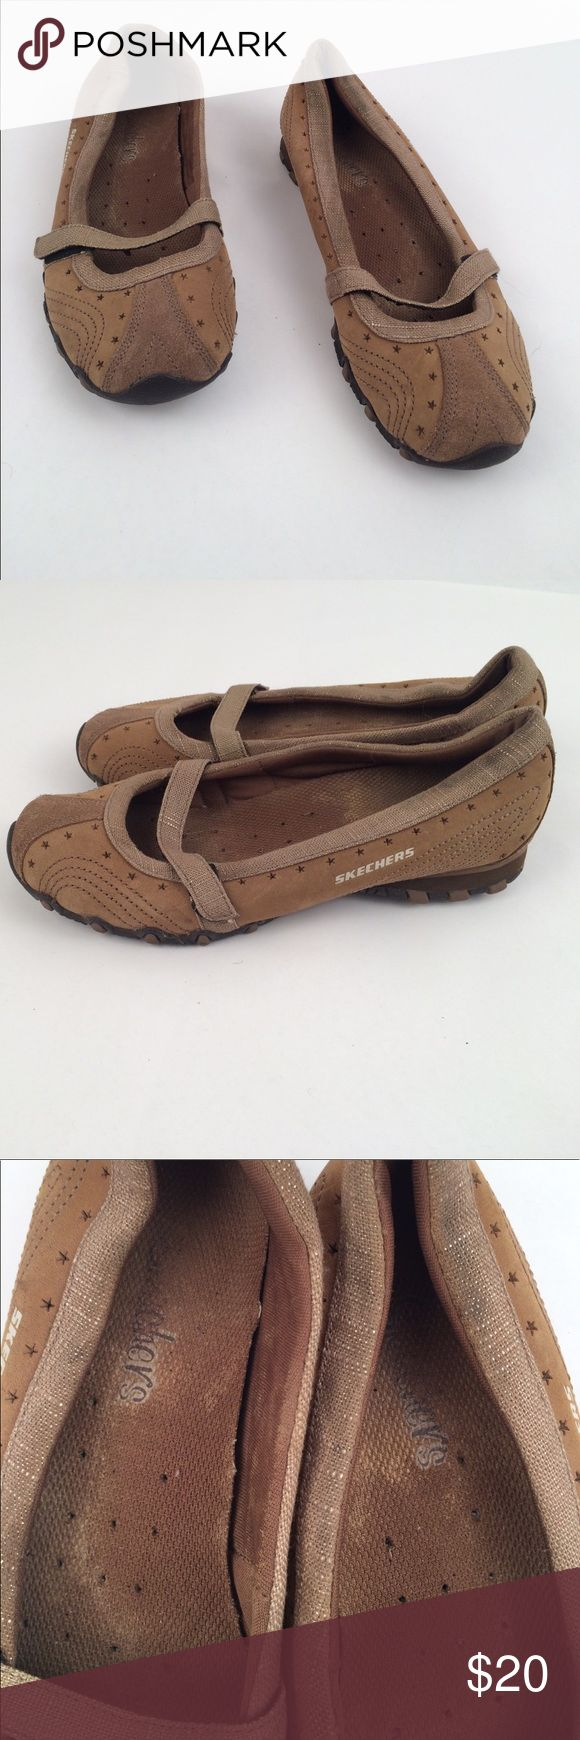 Skechers Mary Jane Flats 6.5 In good condition are these Mary Janes by Skechers with Velcro strap. Size 6.5. Soles are great, shoes in good condition, inside is a little worn. Skechers Shoes Flats & Loafers